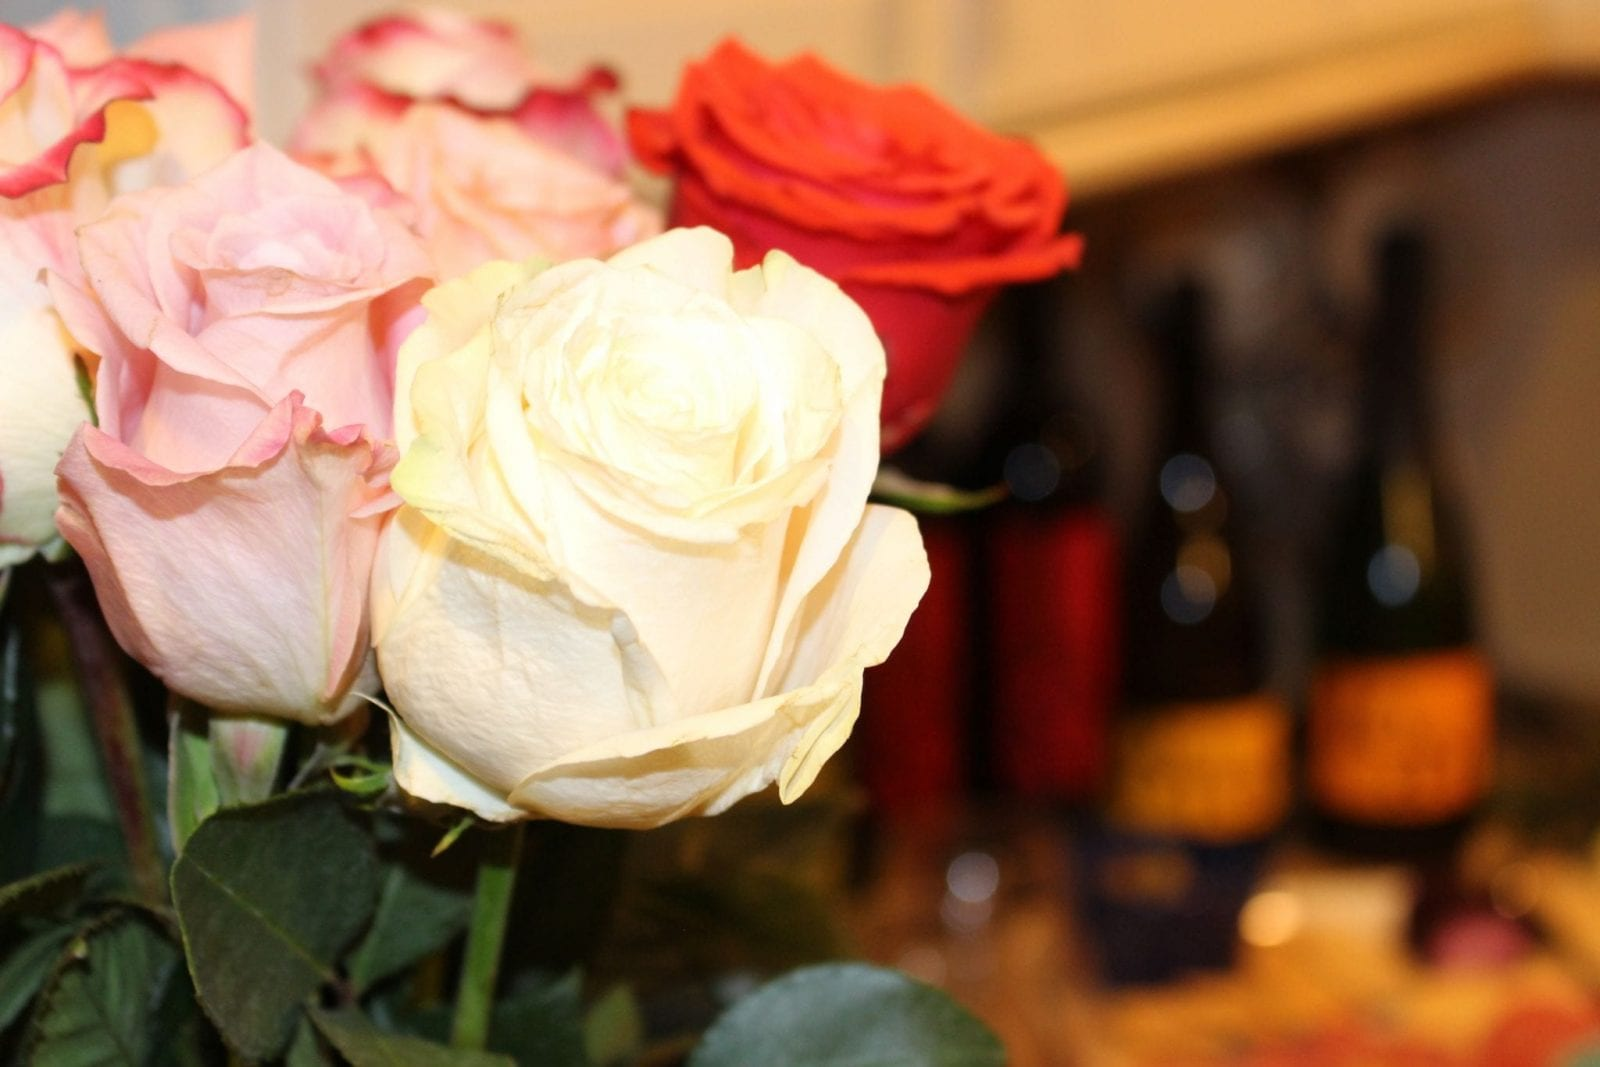 This is a close up of the roses, with the JaM Cellars wine in the background.